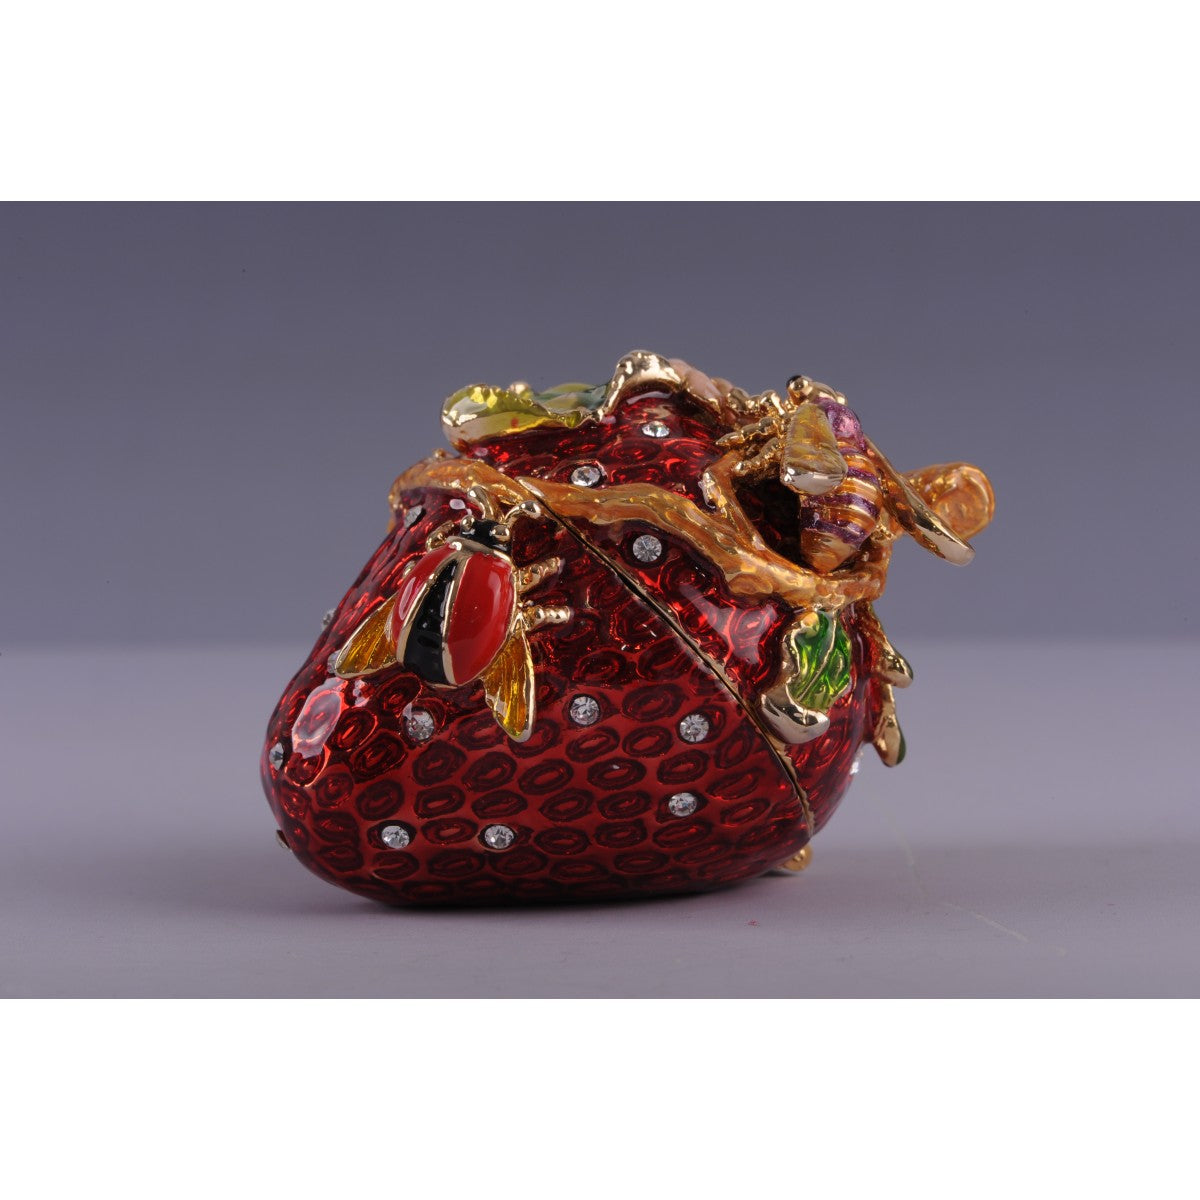 Valentine's Day Strawberry with a Bee and a Beetle Trinket Box by Keren Kopal